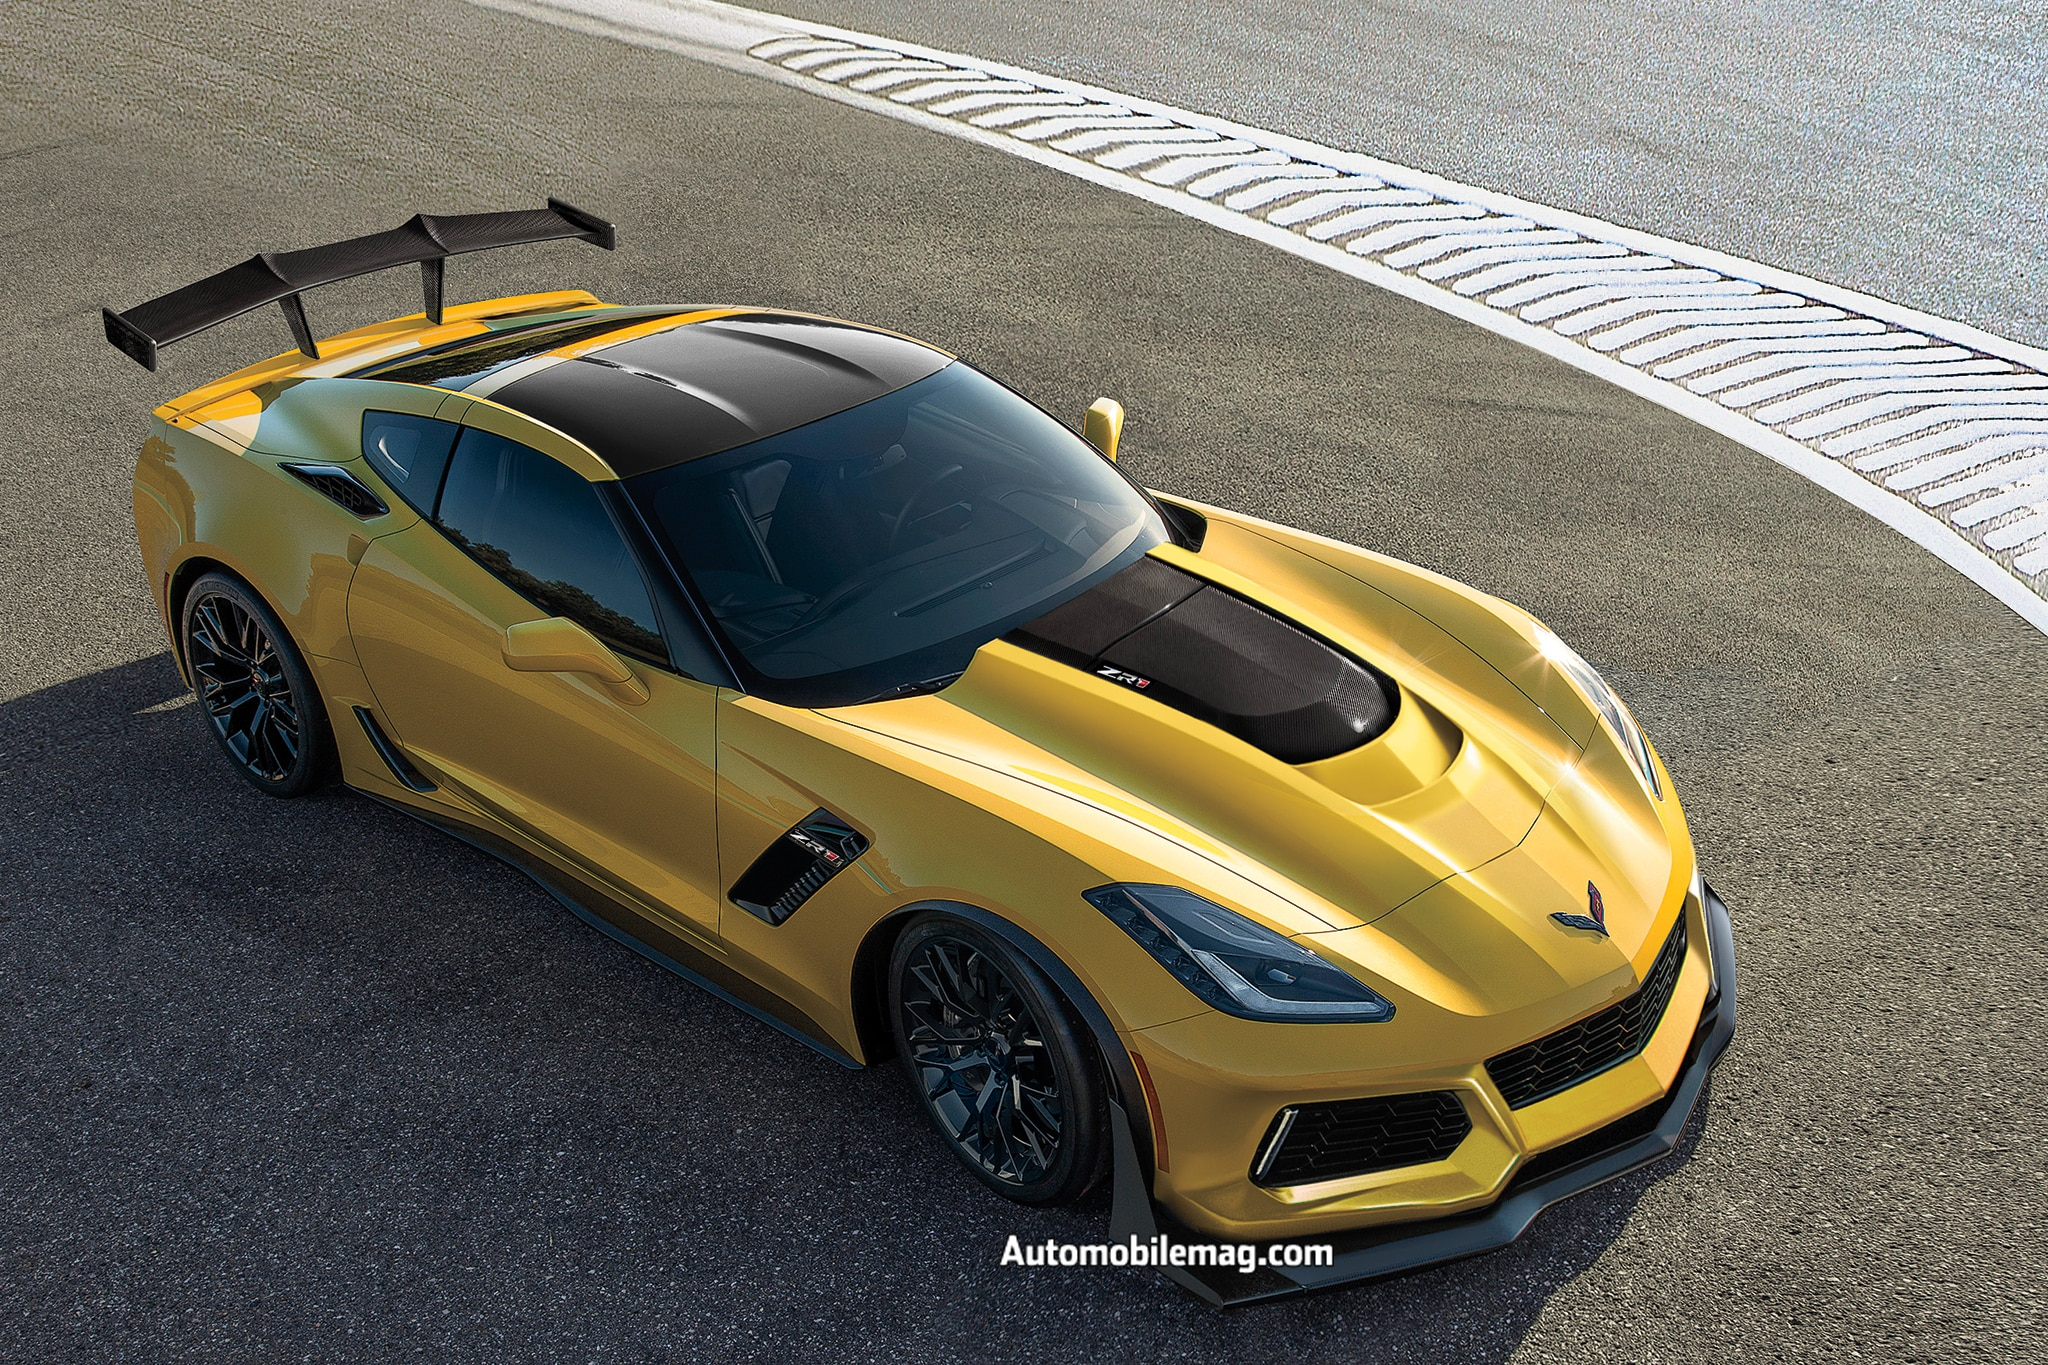 The C8 Corvette Is Expected To Again Use The Latest Performance Variants Of Chevrolets Venerable Small Block V 8 Under Its Relocated Engine Cover